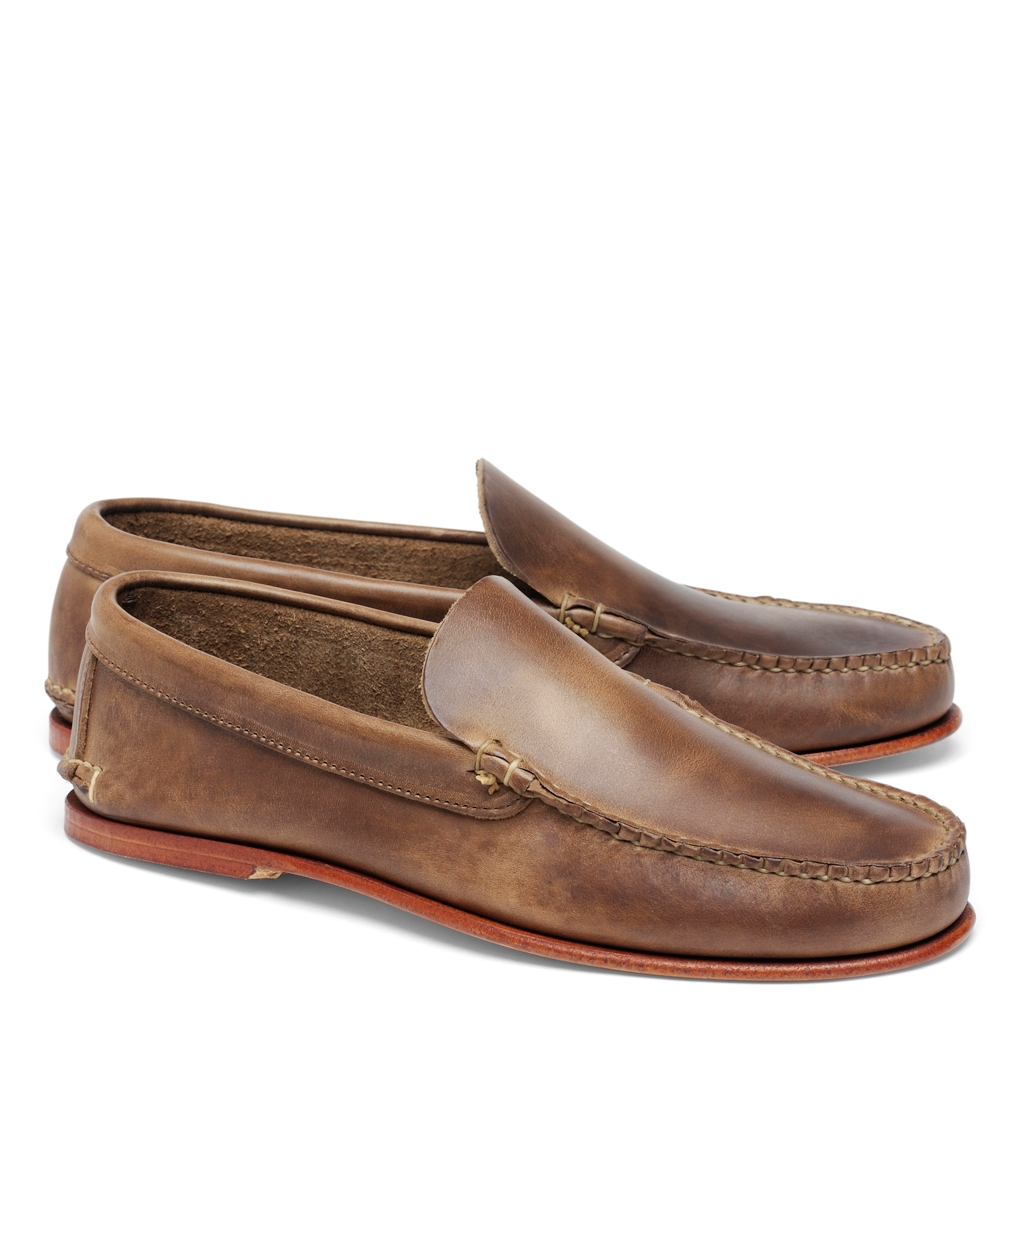 Perry Ellis Shoes Canada